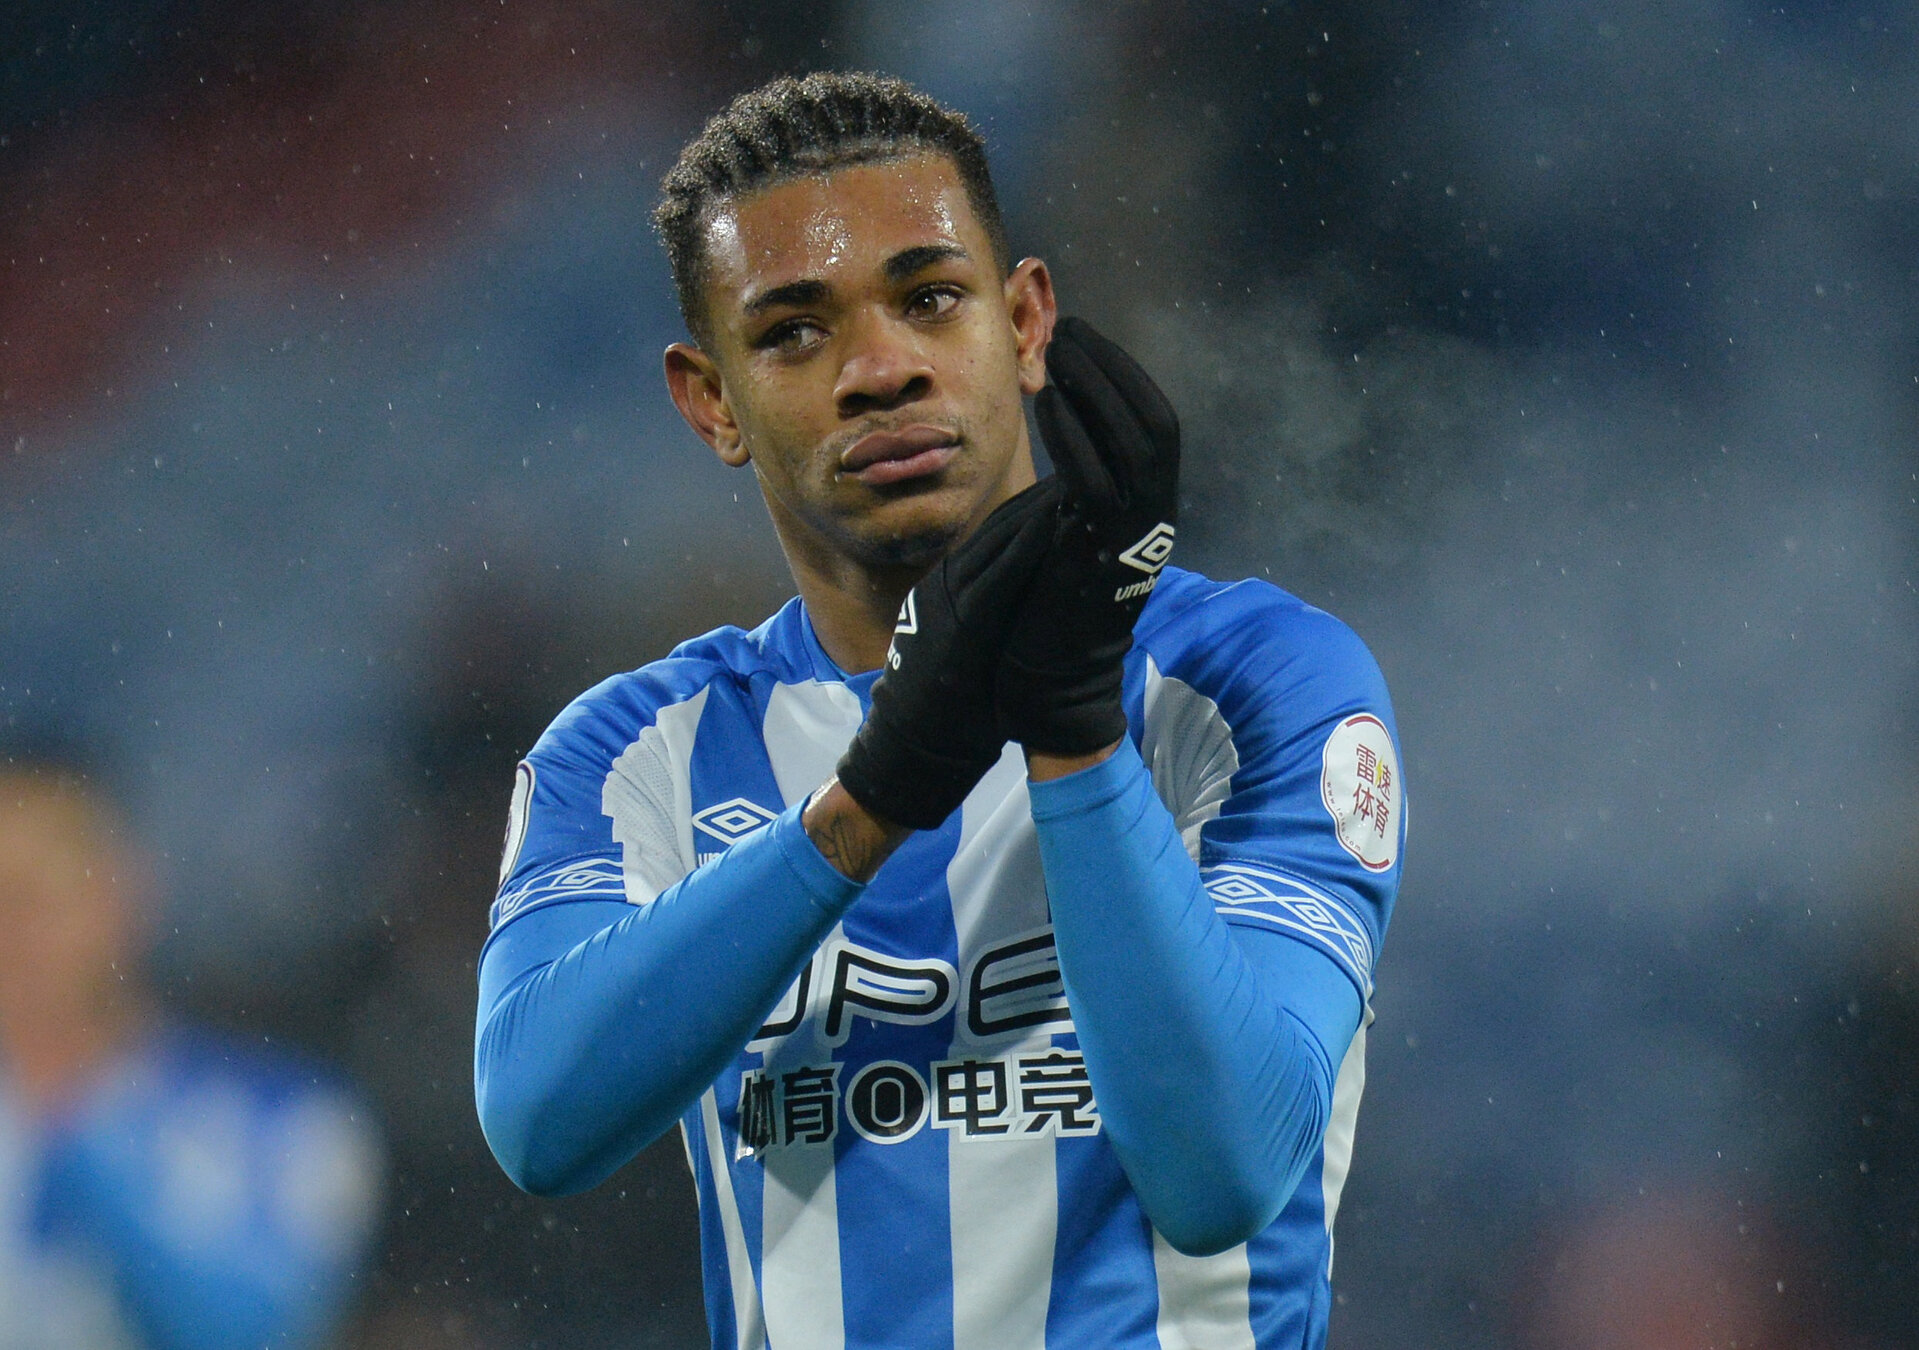 """Soccer Football - Premier League - Huddersfield Town v Newcastle United - John Smith's Stadium, Huddersfield, Britain - December 15, 2018  Huddersfield Town's Juninho Bacuna applauds fans after the match          REUTERS/Peter Powell  EDITORIAL USE ONLY. No use with unauthorized audio, video, data, fixture lists, club/league logos or """"live"""" services. Online in-match use limited to 75 images, no video emulation. No use in betting, games or single club/league/player publications.  Please contact your account representative for further details."""